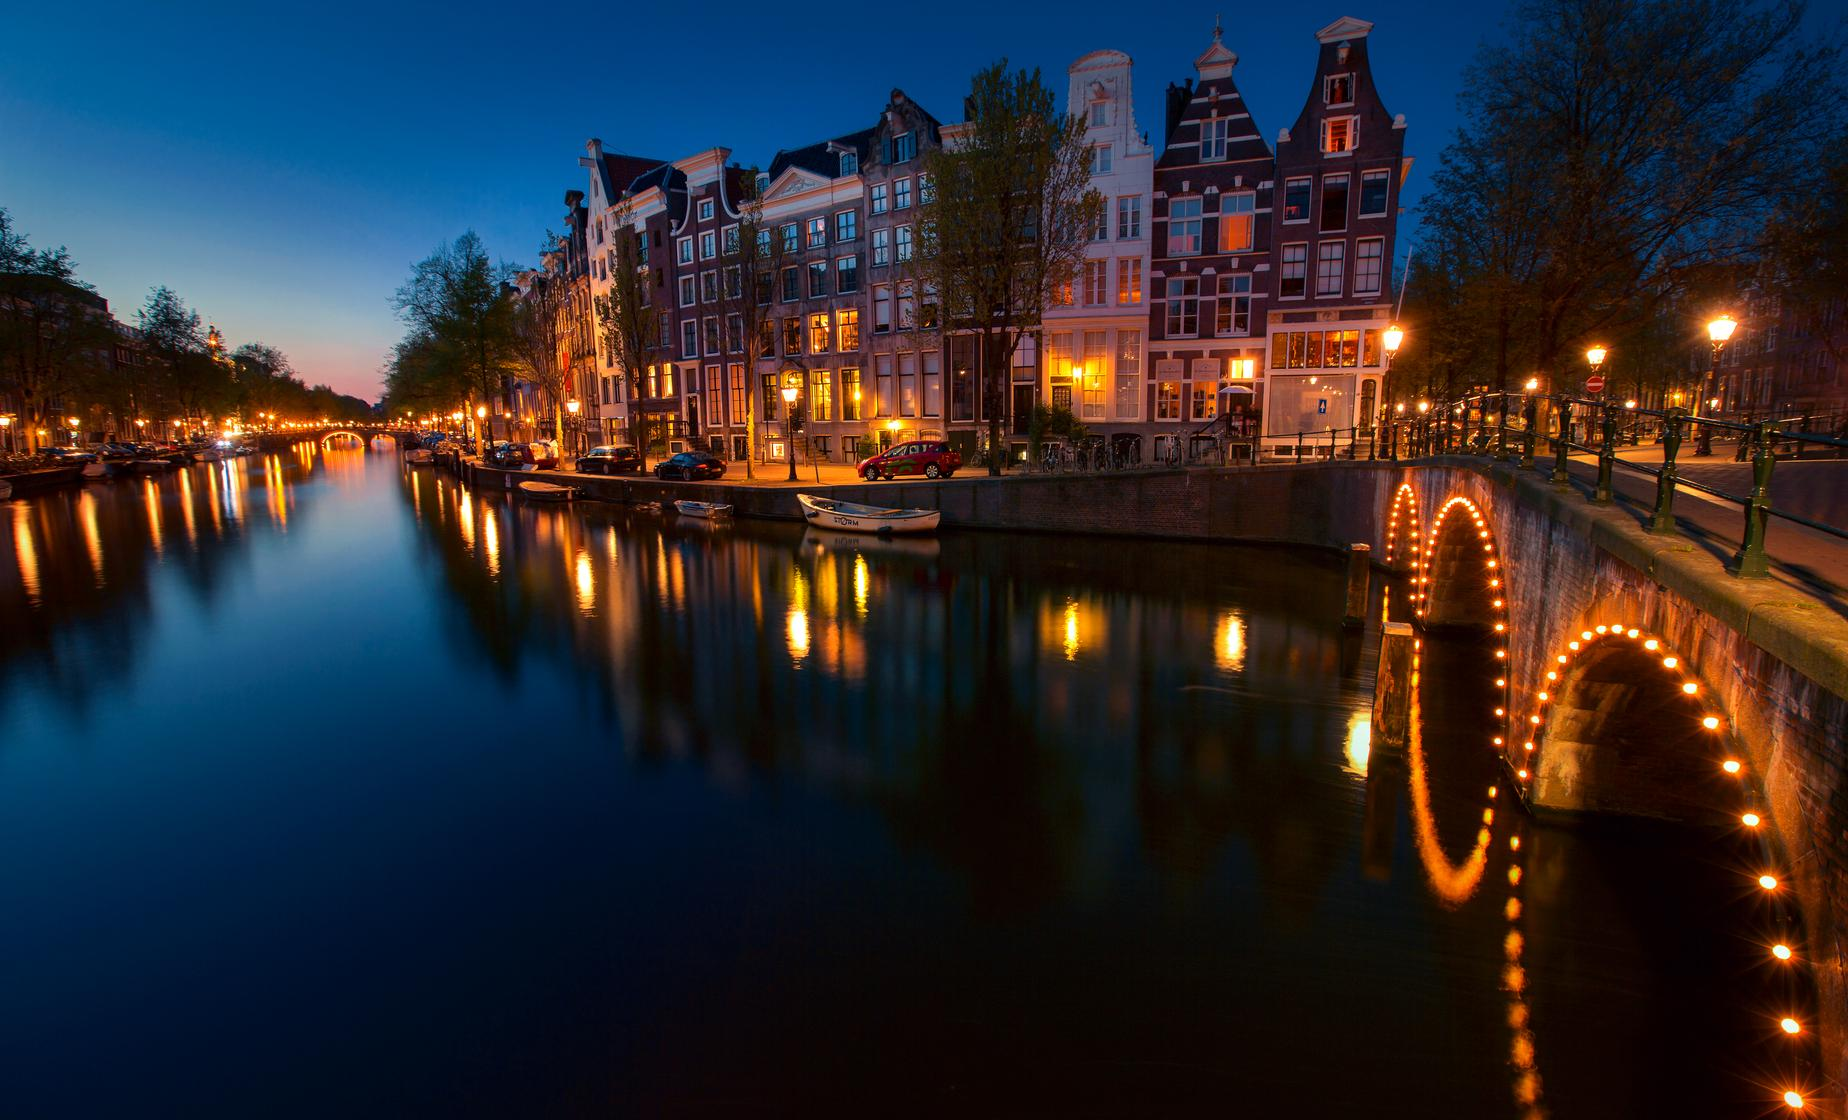 Four Course Dinner Cruise - Amsterdam (Venice of the North)